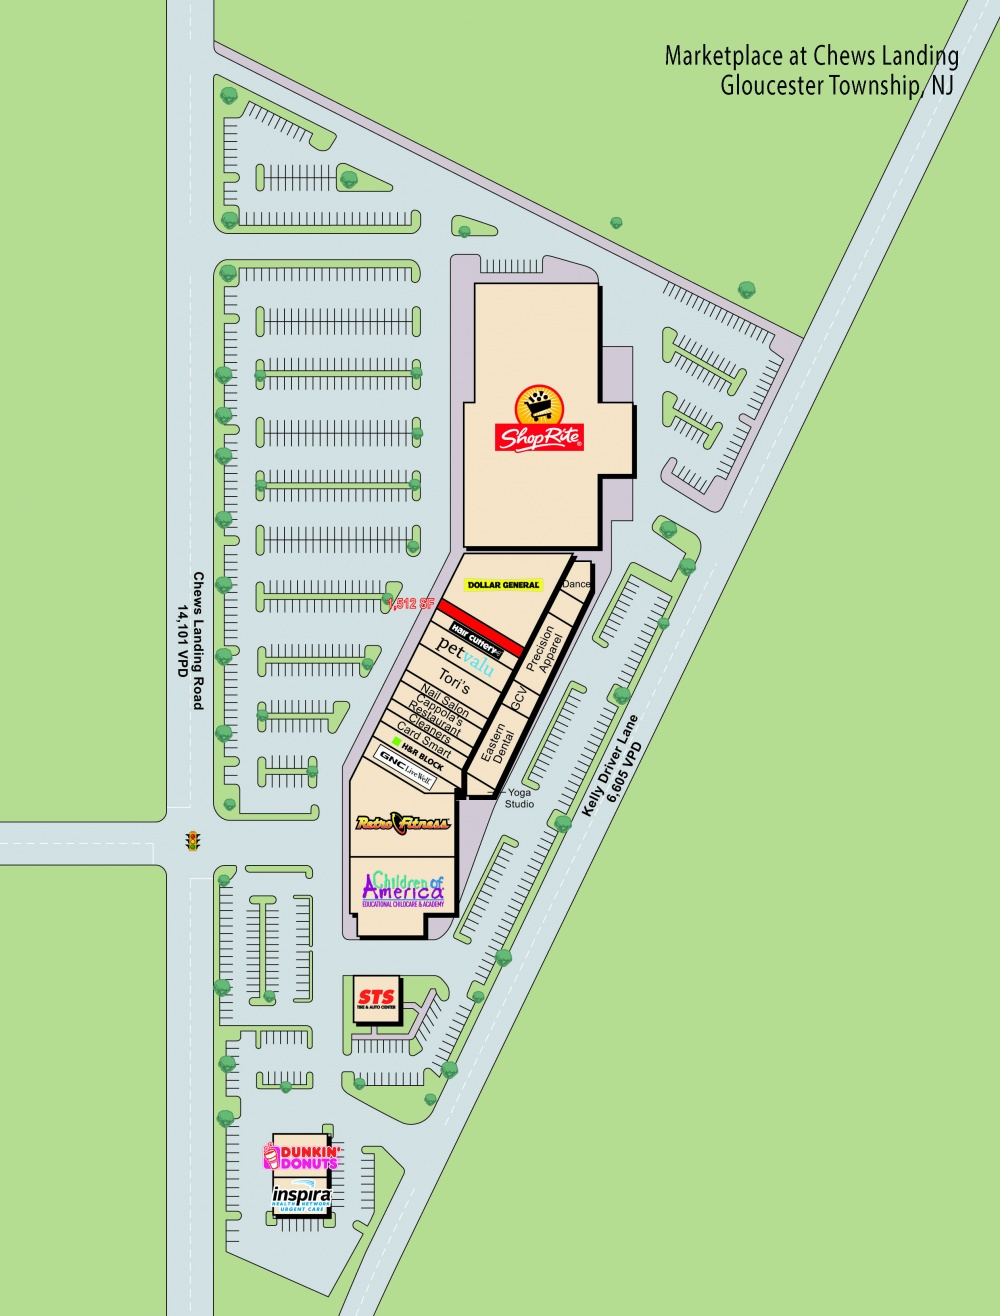 paramount realty services marketplace at chews landing